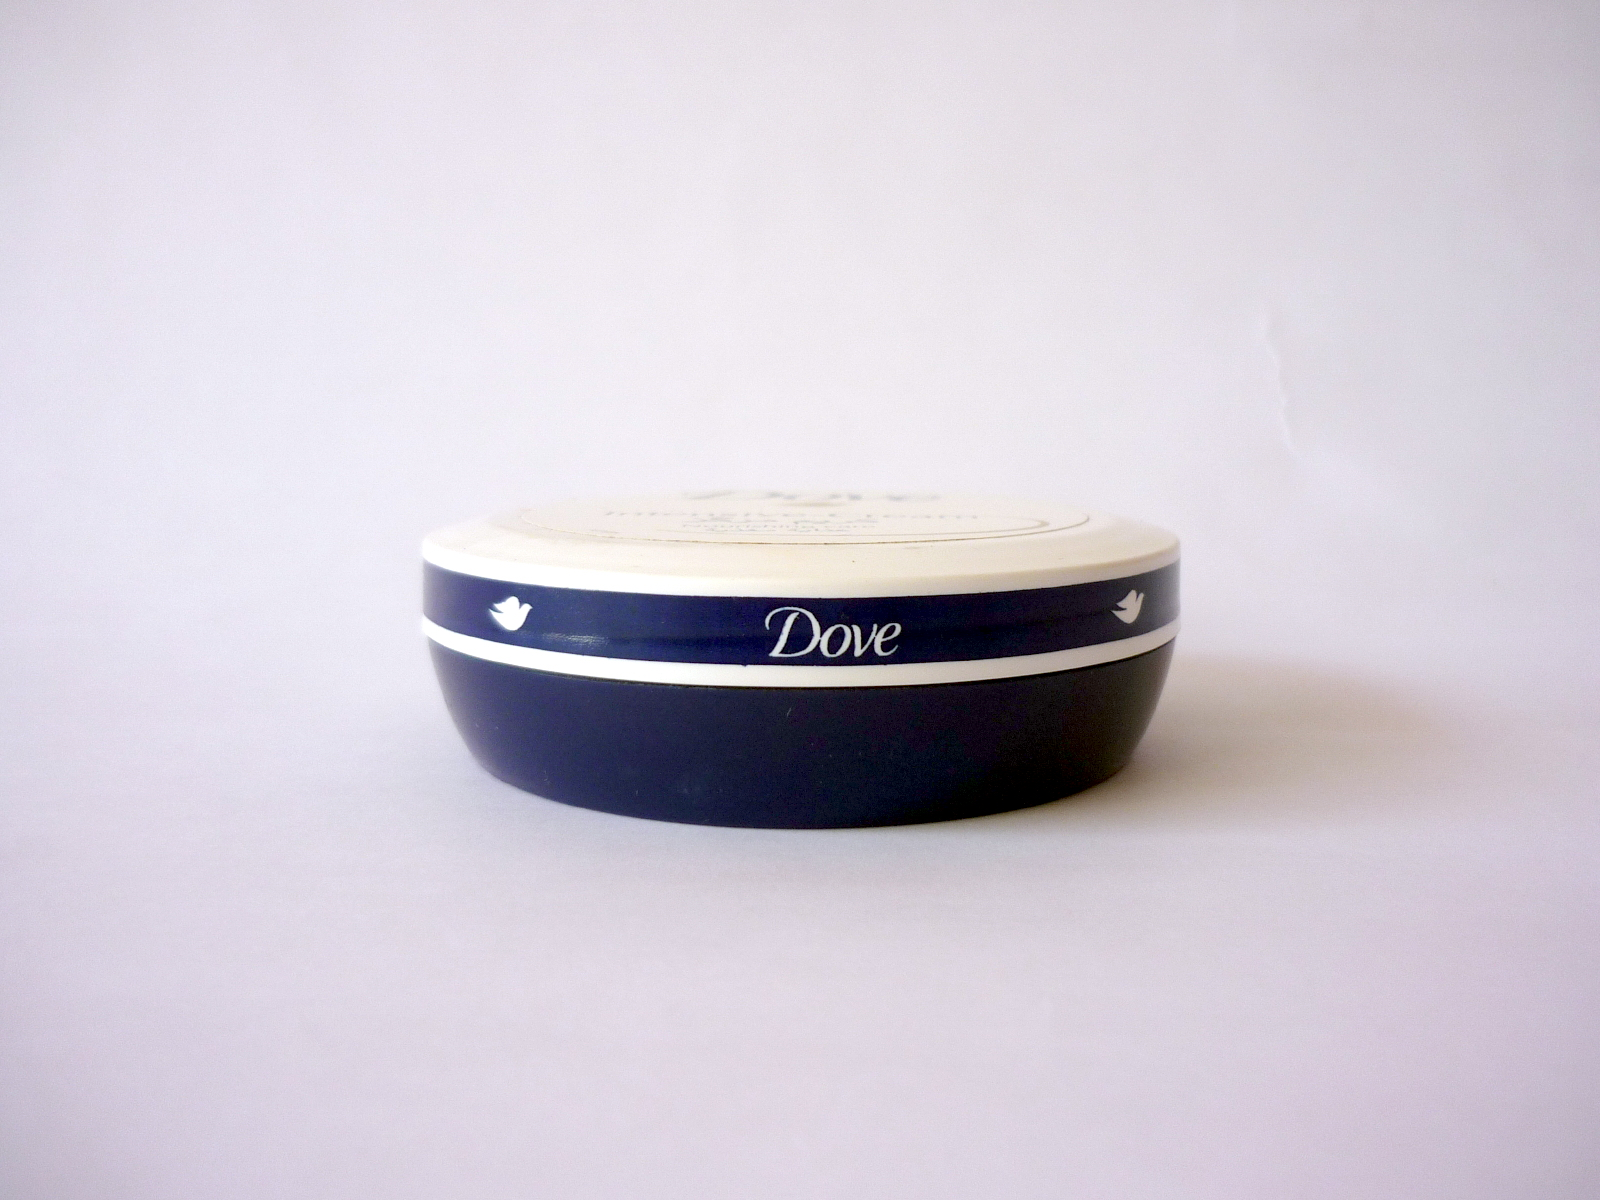 Dove Cream, Intensivecare, White, Doveintensivecar, Dove, HQ Photo